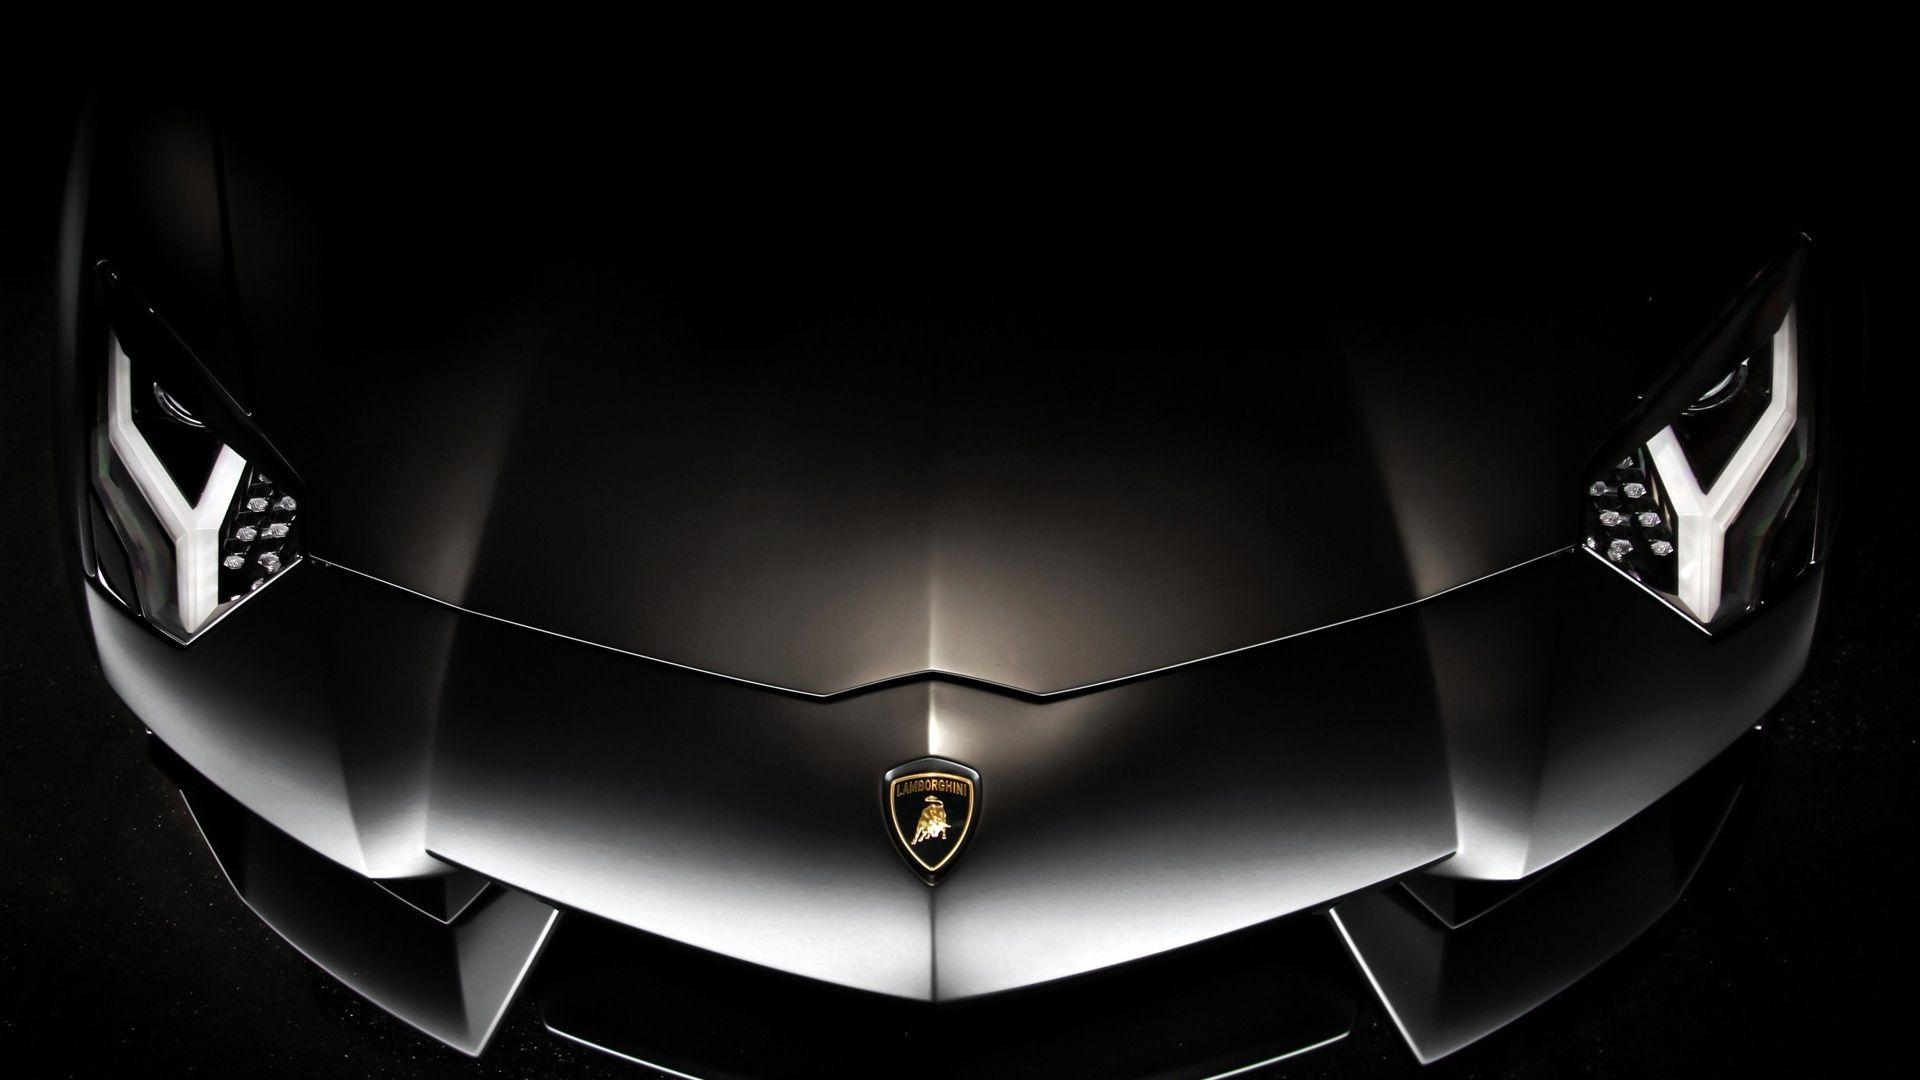 Lamborghini Logo Hd Wallpapers Wallpaper Cave